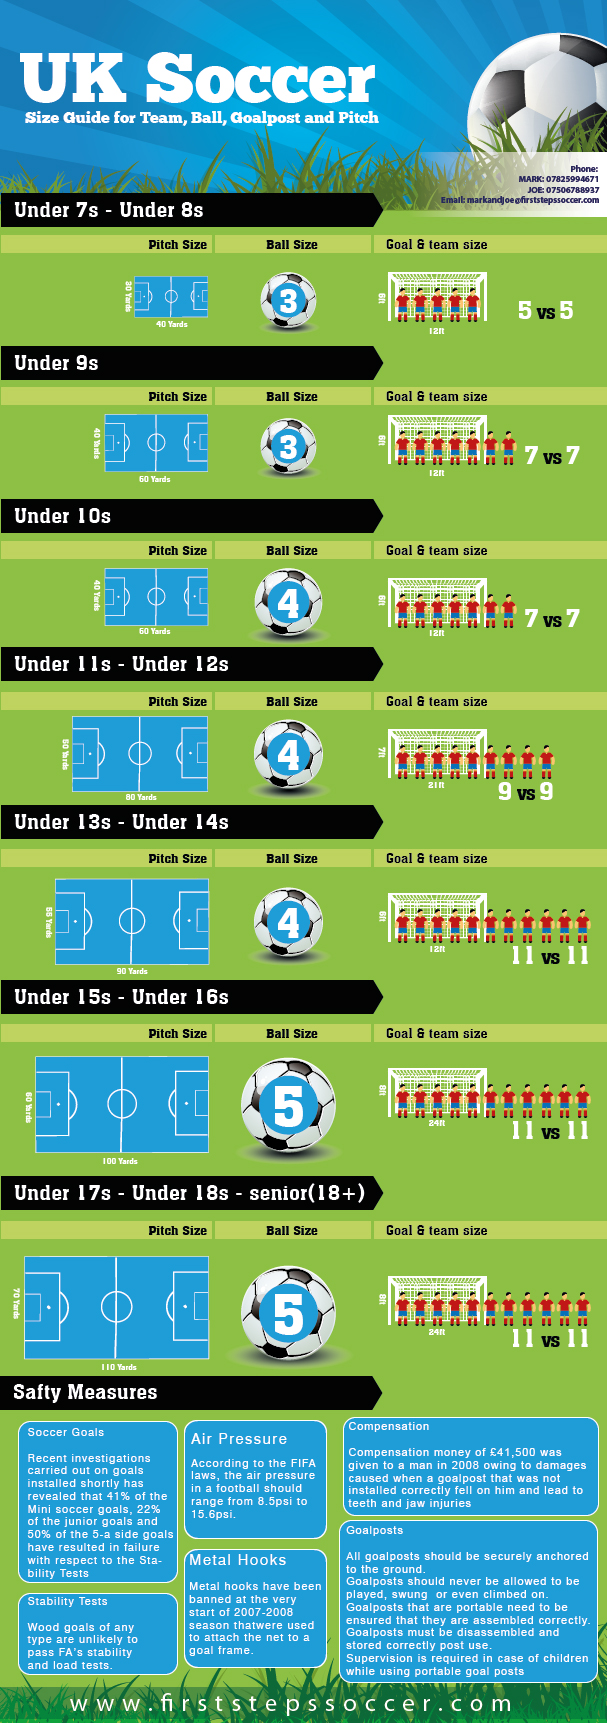 Size Guide for Team, Ball, Goalpost and Pitch